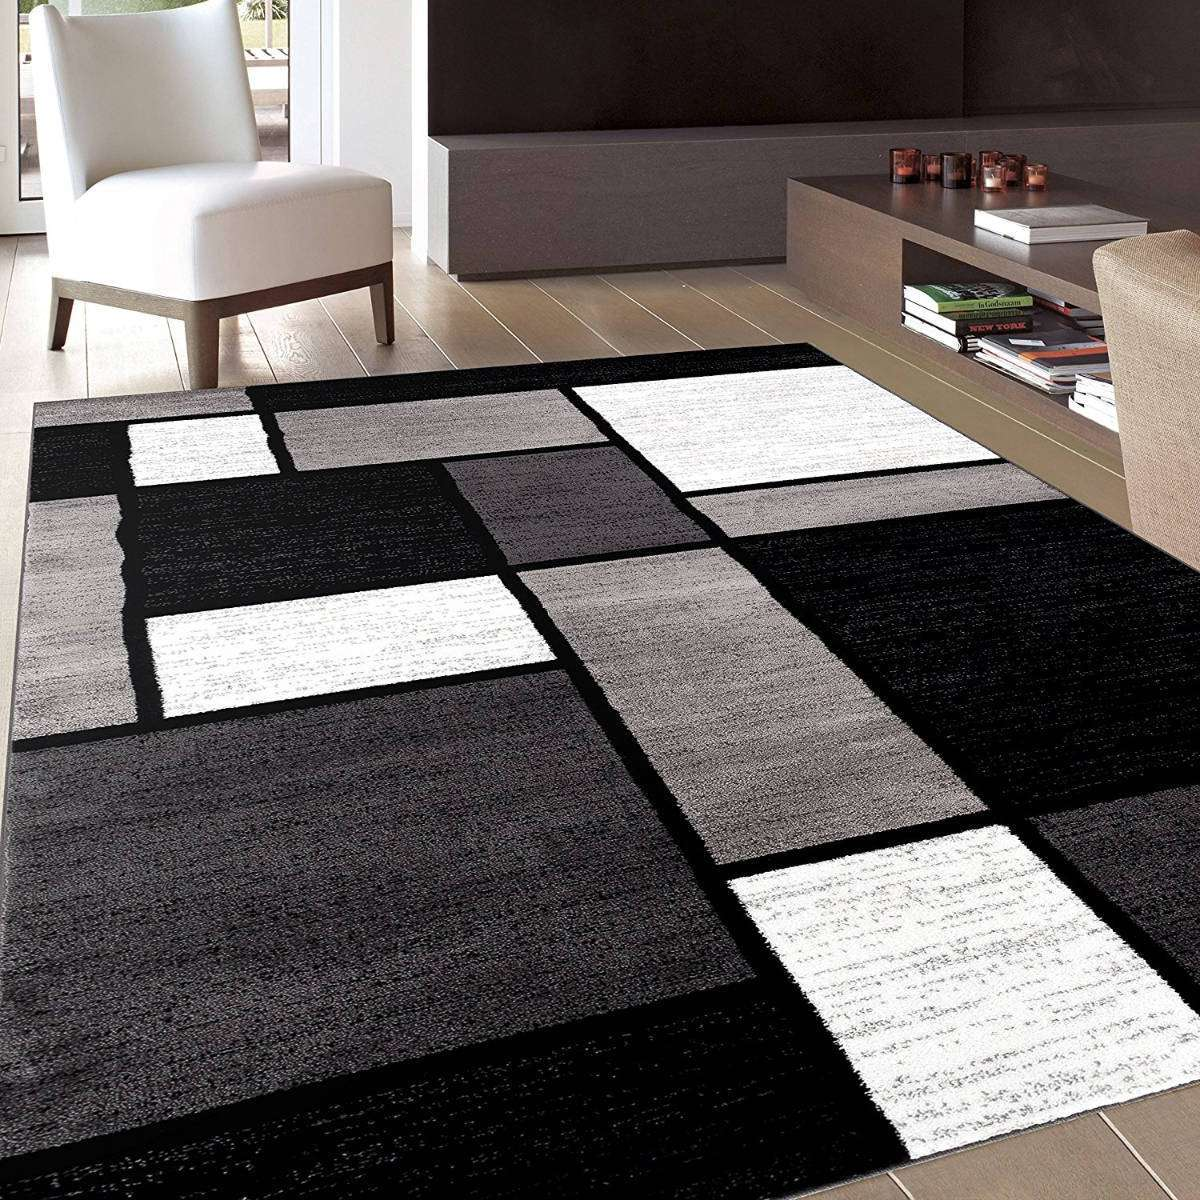 Nettoyage Maison Tapis Super D 233 Co